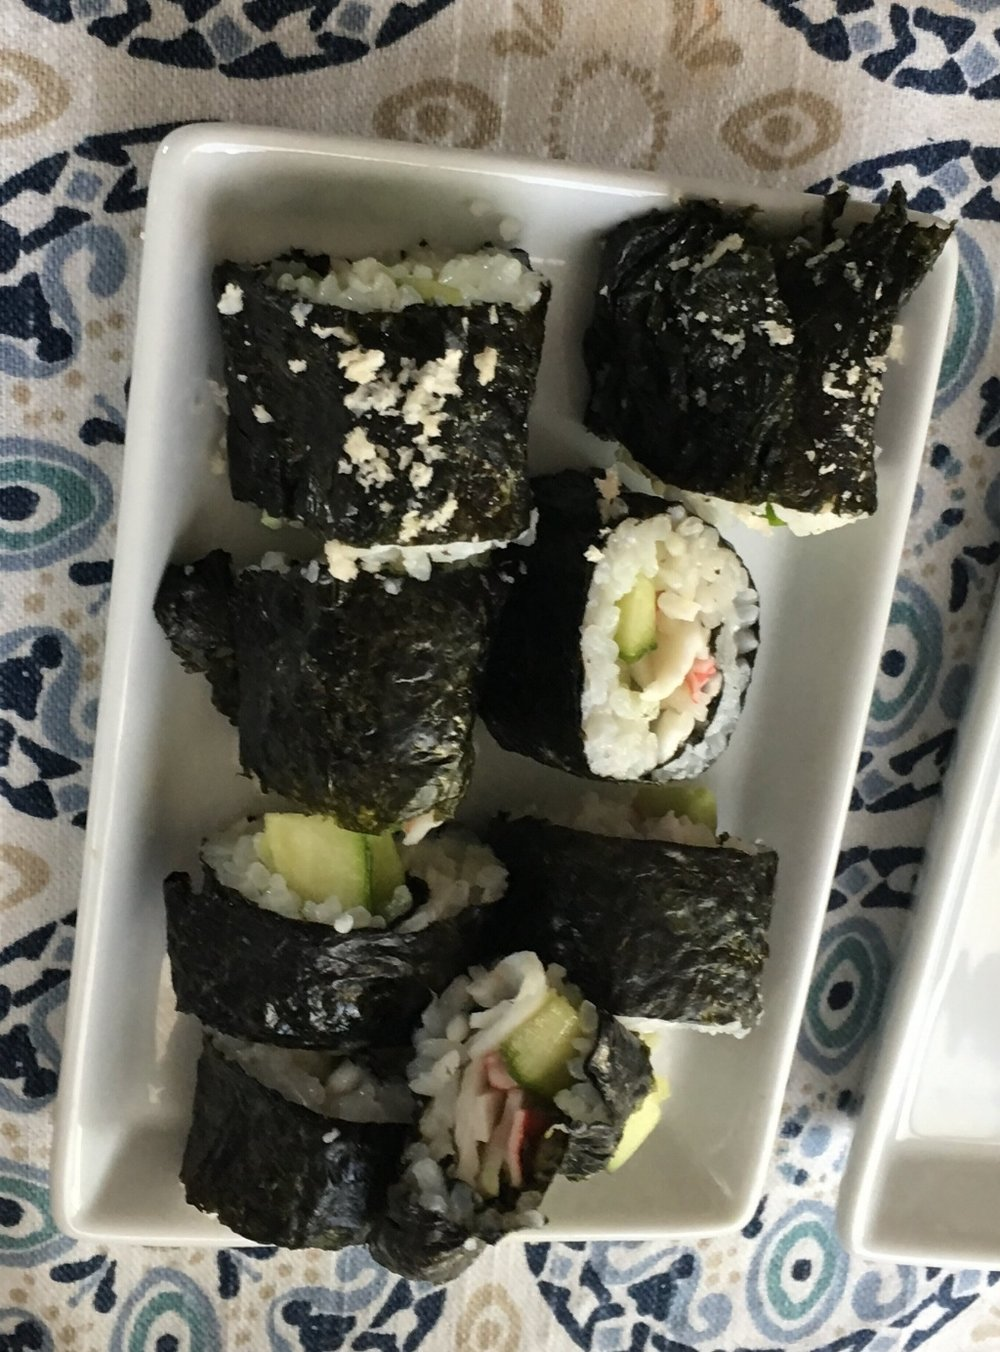 This is not terribly pretty, but it tastes good! I'm getting better at my sushi rolling. We had family over and for about $20 of ingredients, we had enough sushi to feed everyone. Much less than any cheap sushi joint.